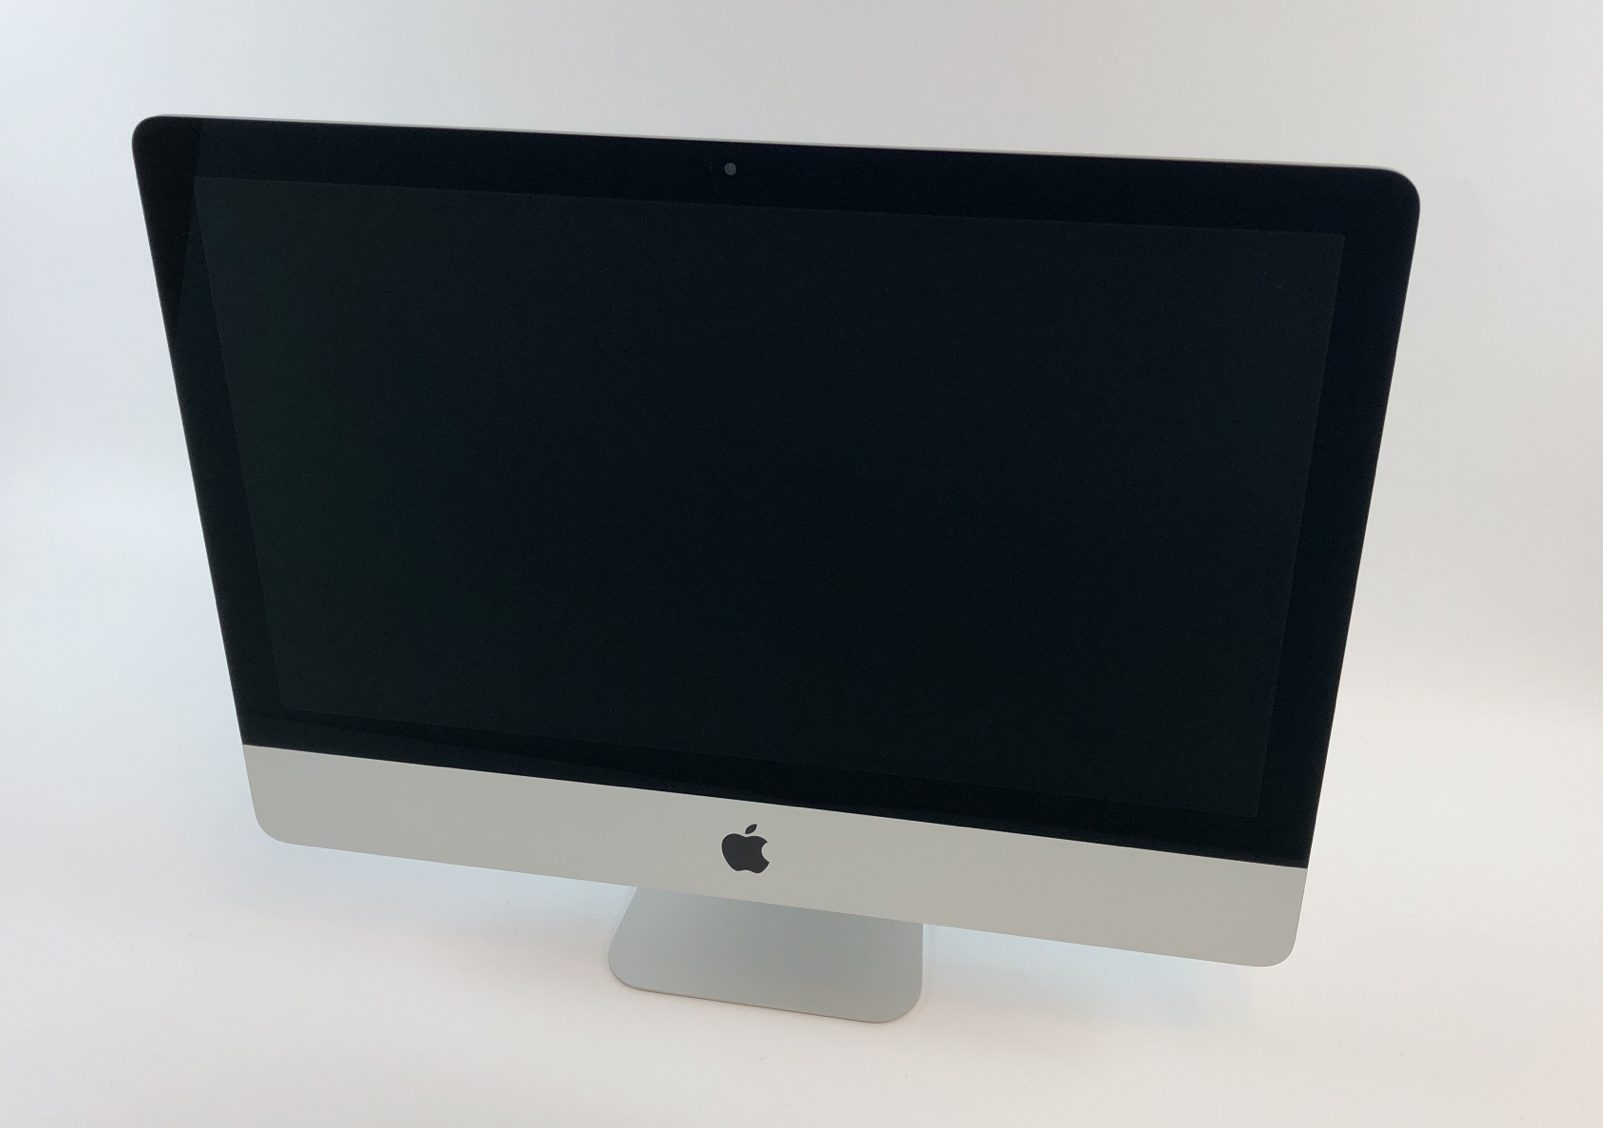 "iMac 21.5"" Retina 4K Late 2015 (Intel Quad-Core i5 3.1 GHz 8 GB RAM 1 TB HDD), Intel Quad-Core i5 3.1 GHz, 8 GB RAM, 1 TB HDD, imagen 1"